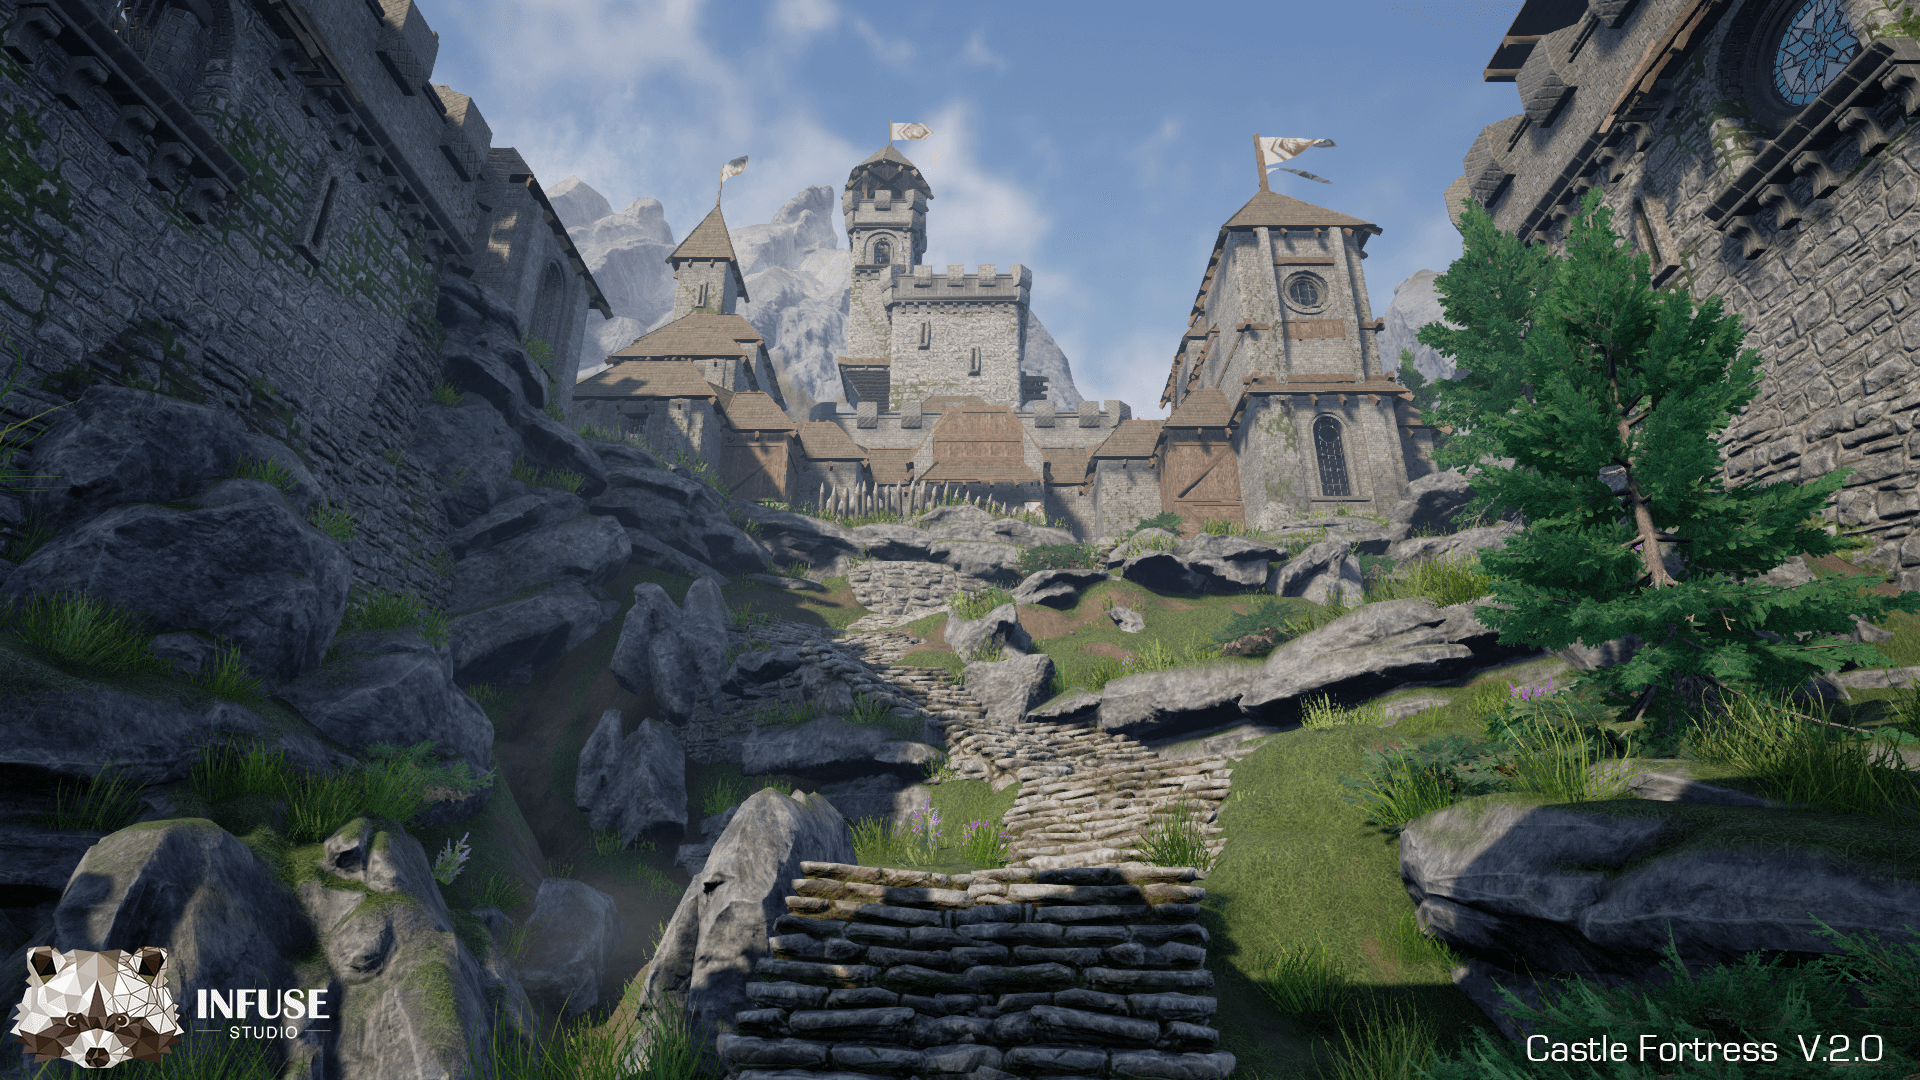 Castle Fortress Infuse Studio Environments